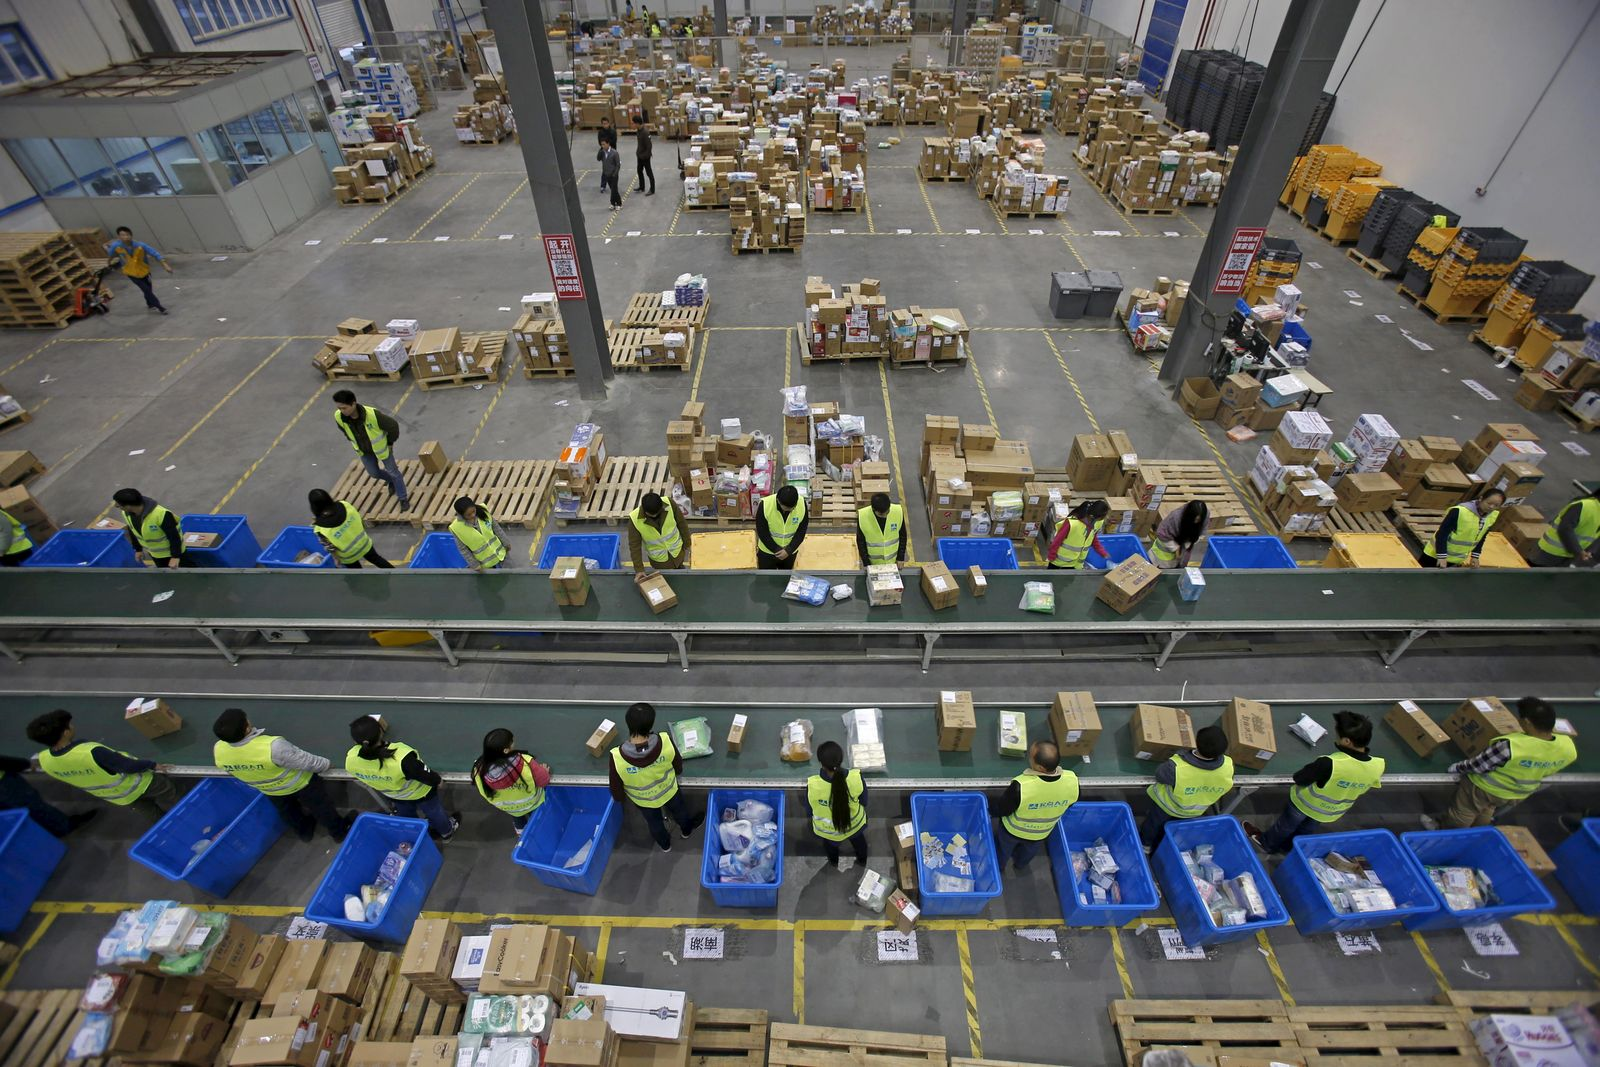 Employees sort boxes and parcels next to a conveyor belt at the logistic centre of a express delivery company, after the Singles Day online shopping festival, in Wuhan